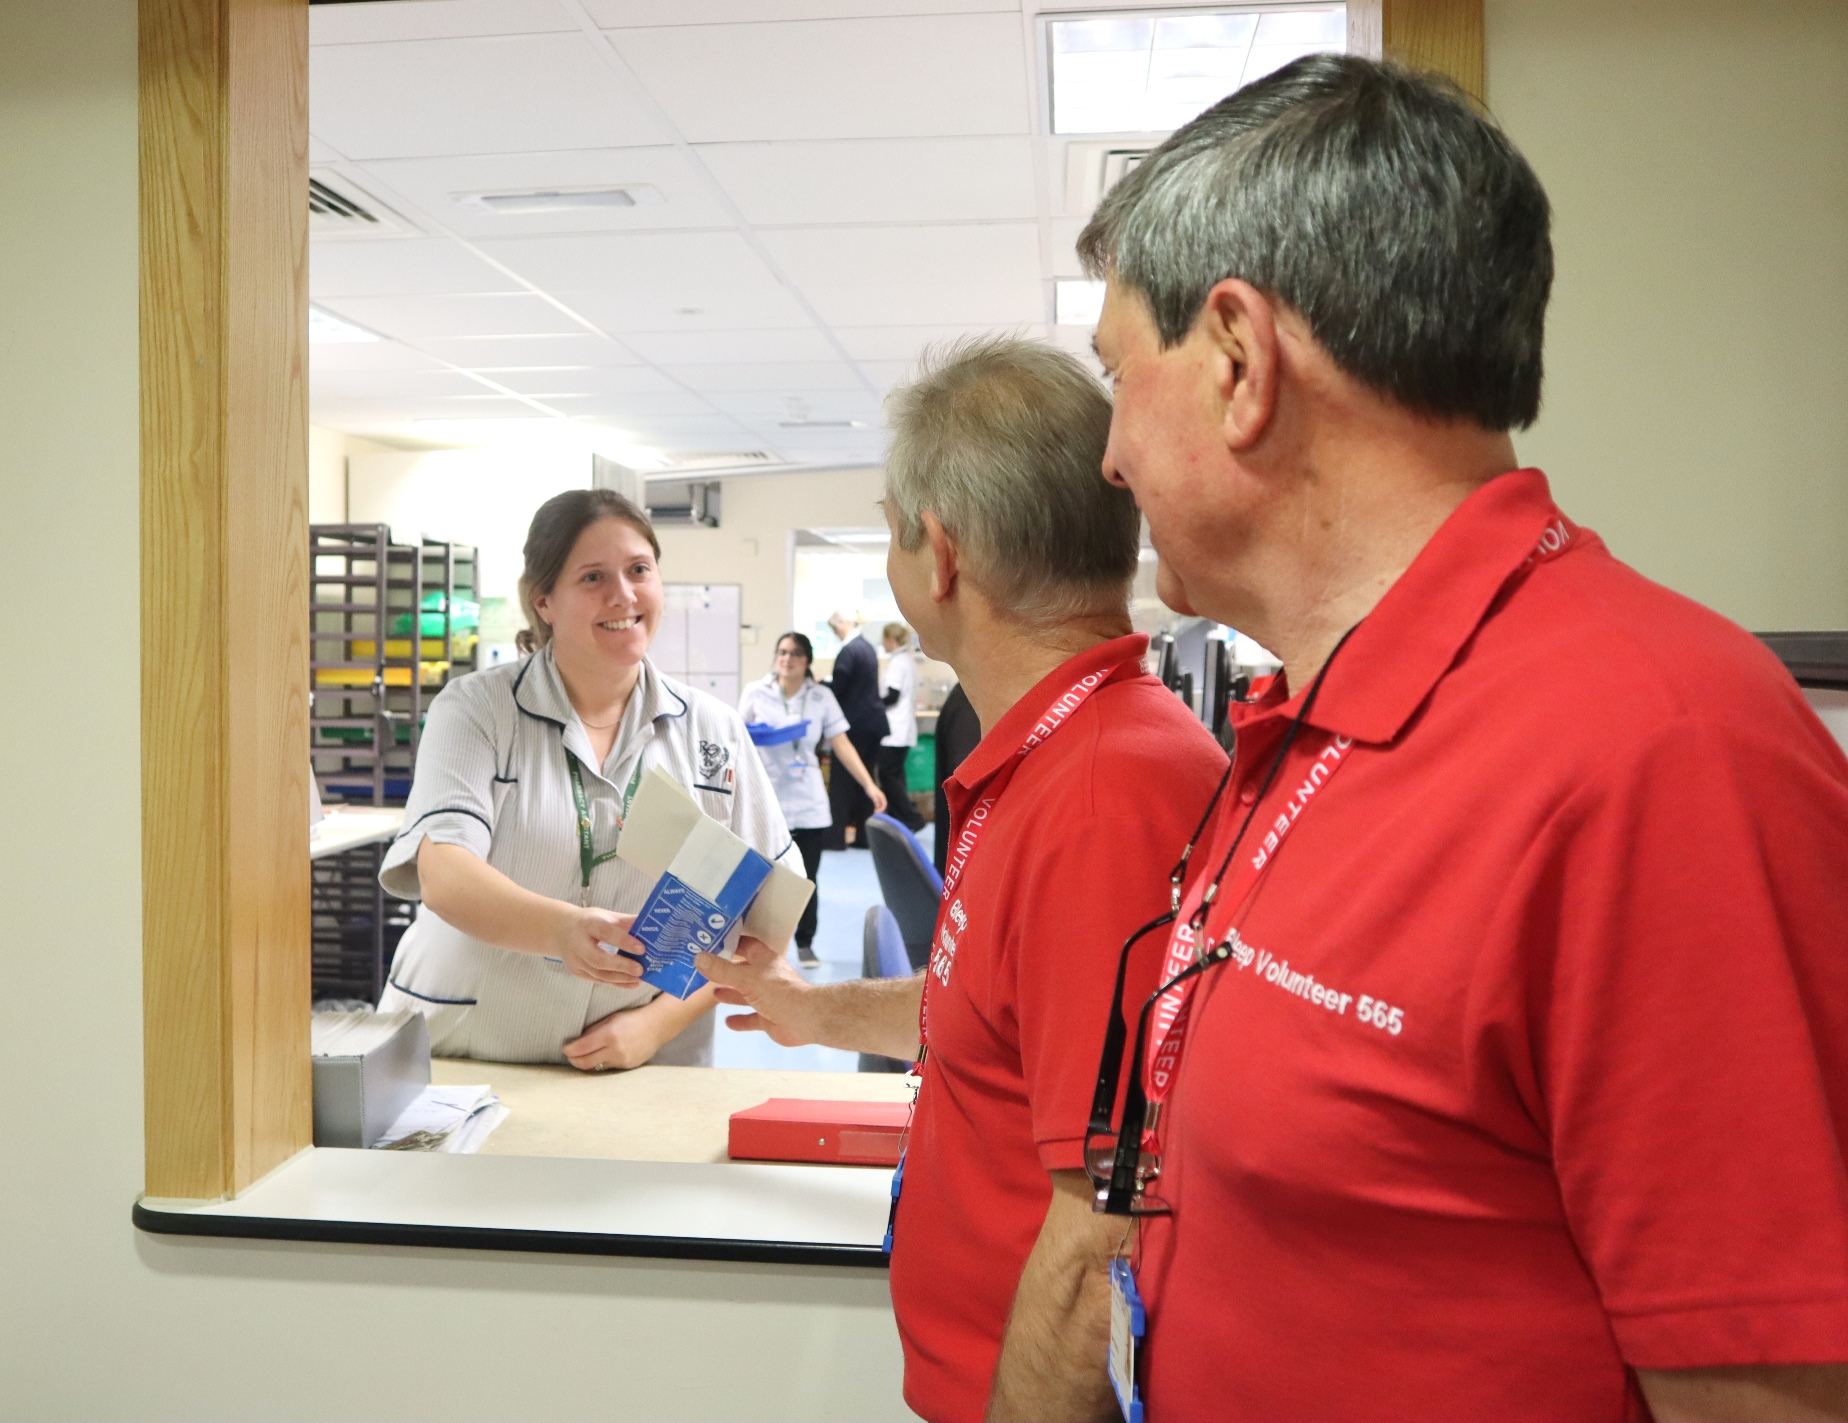 Bleep volunteers support ward staff and the pharmacy team to deliver patients their take home medication